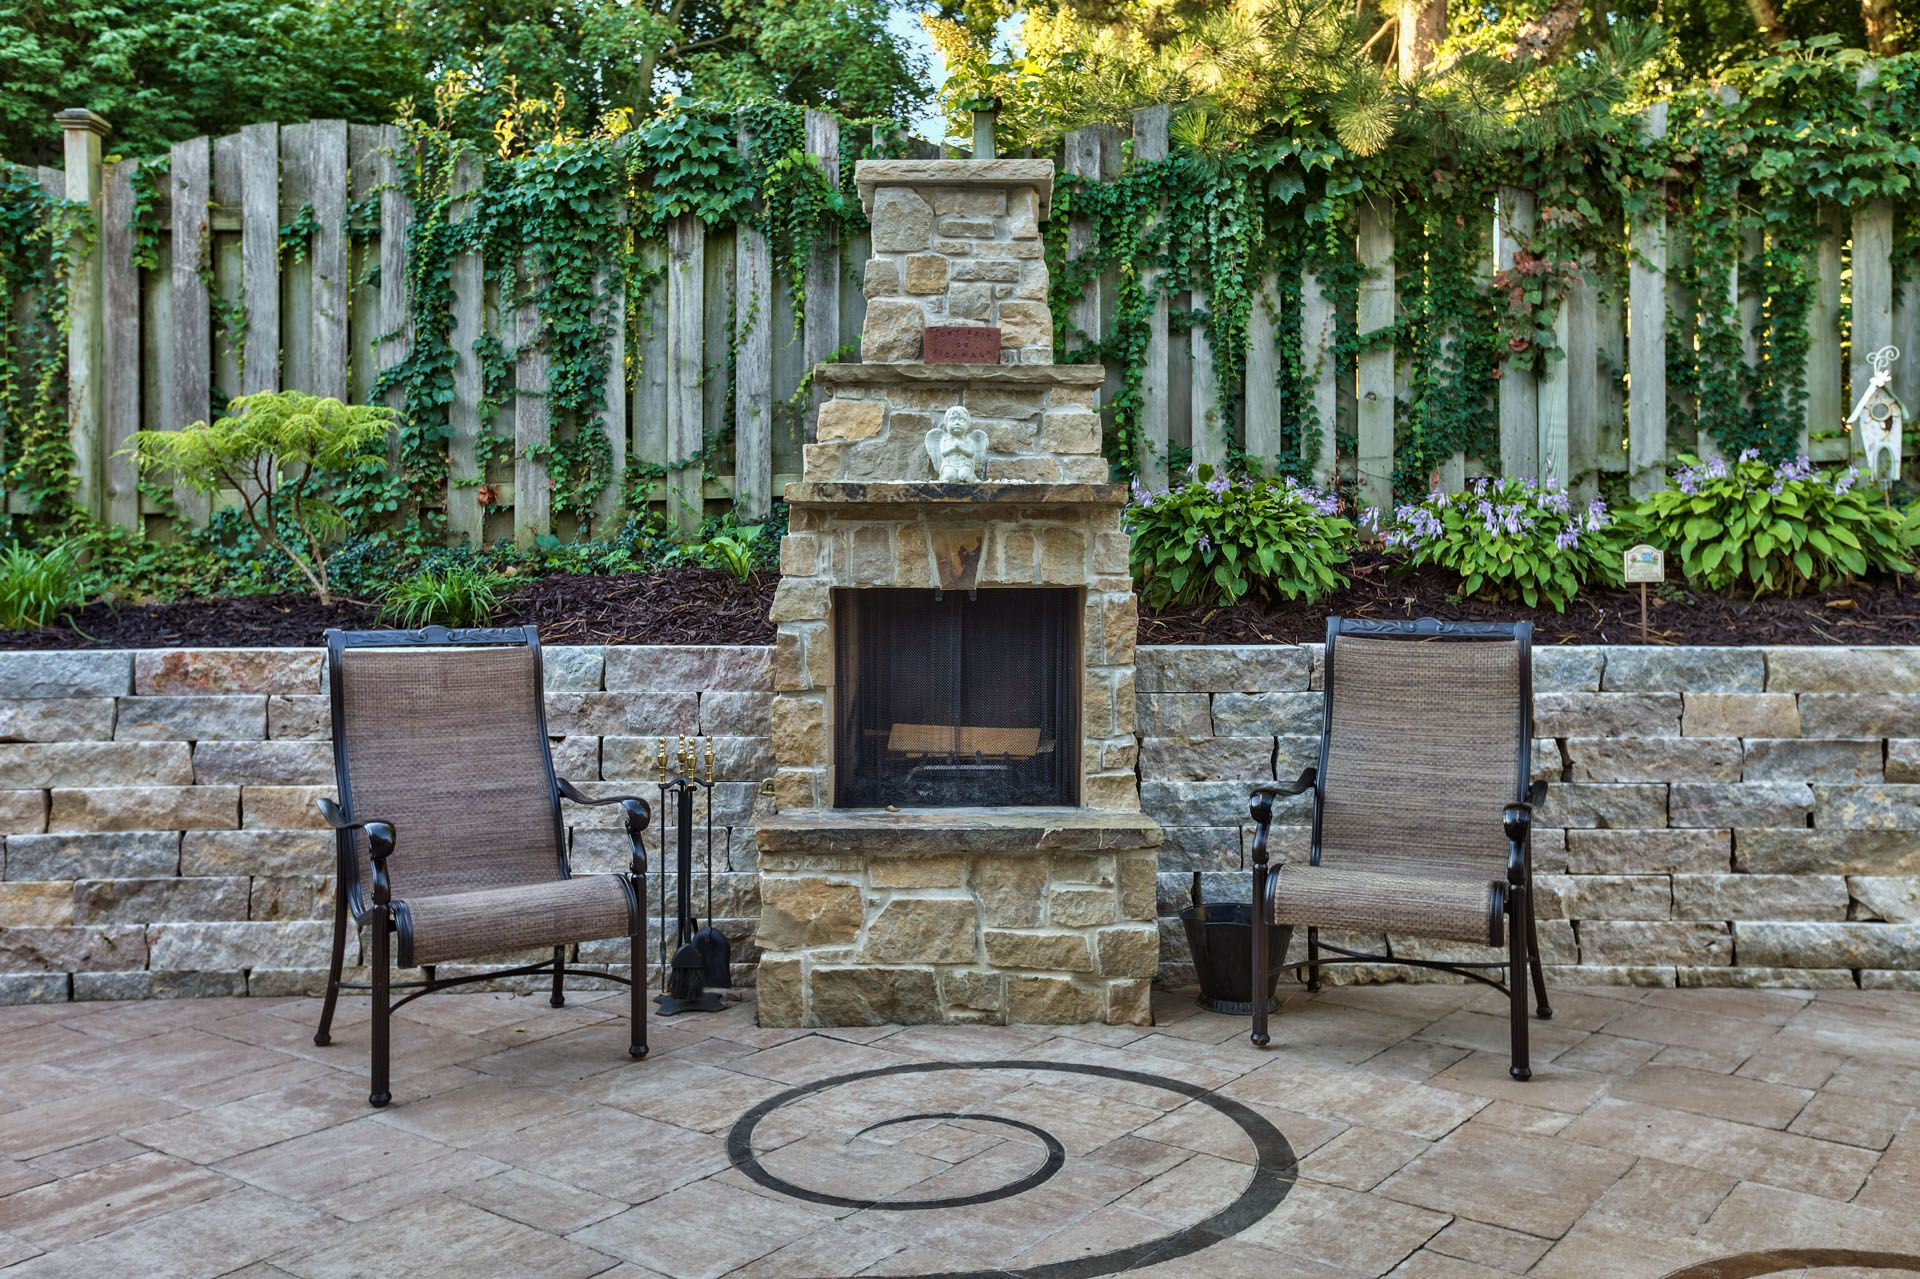 An elegant stone fireplace was built into a retaining wall to make